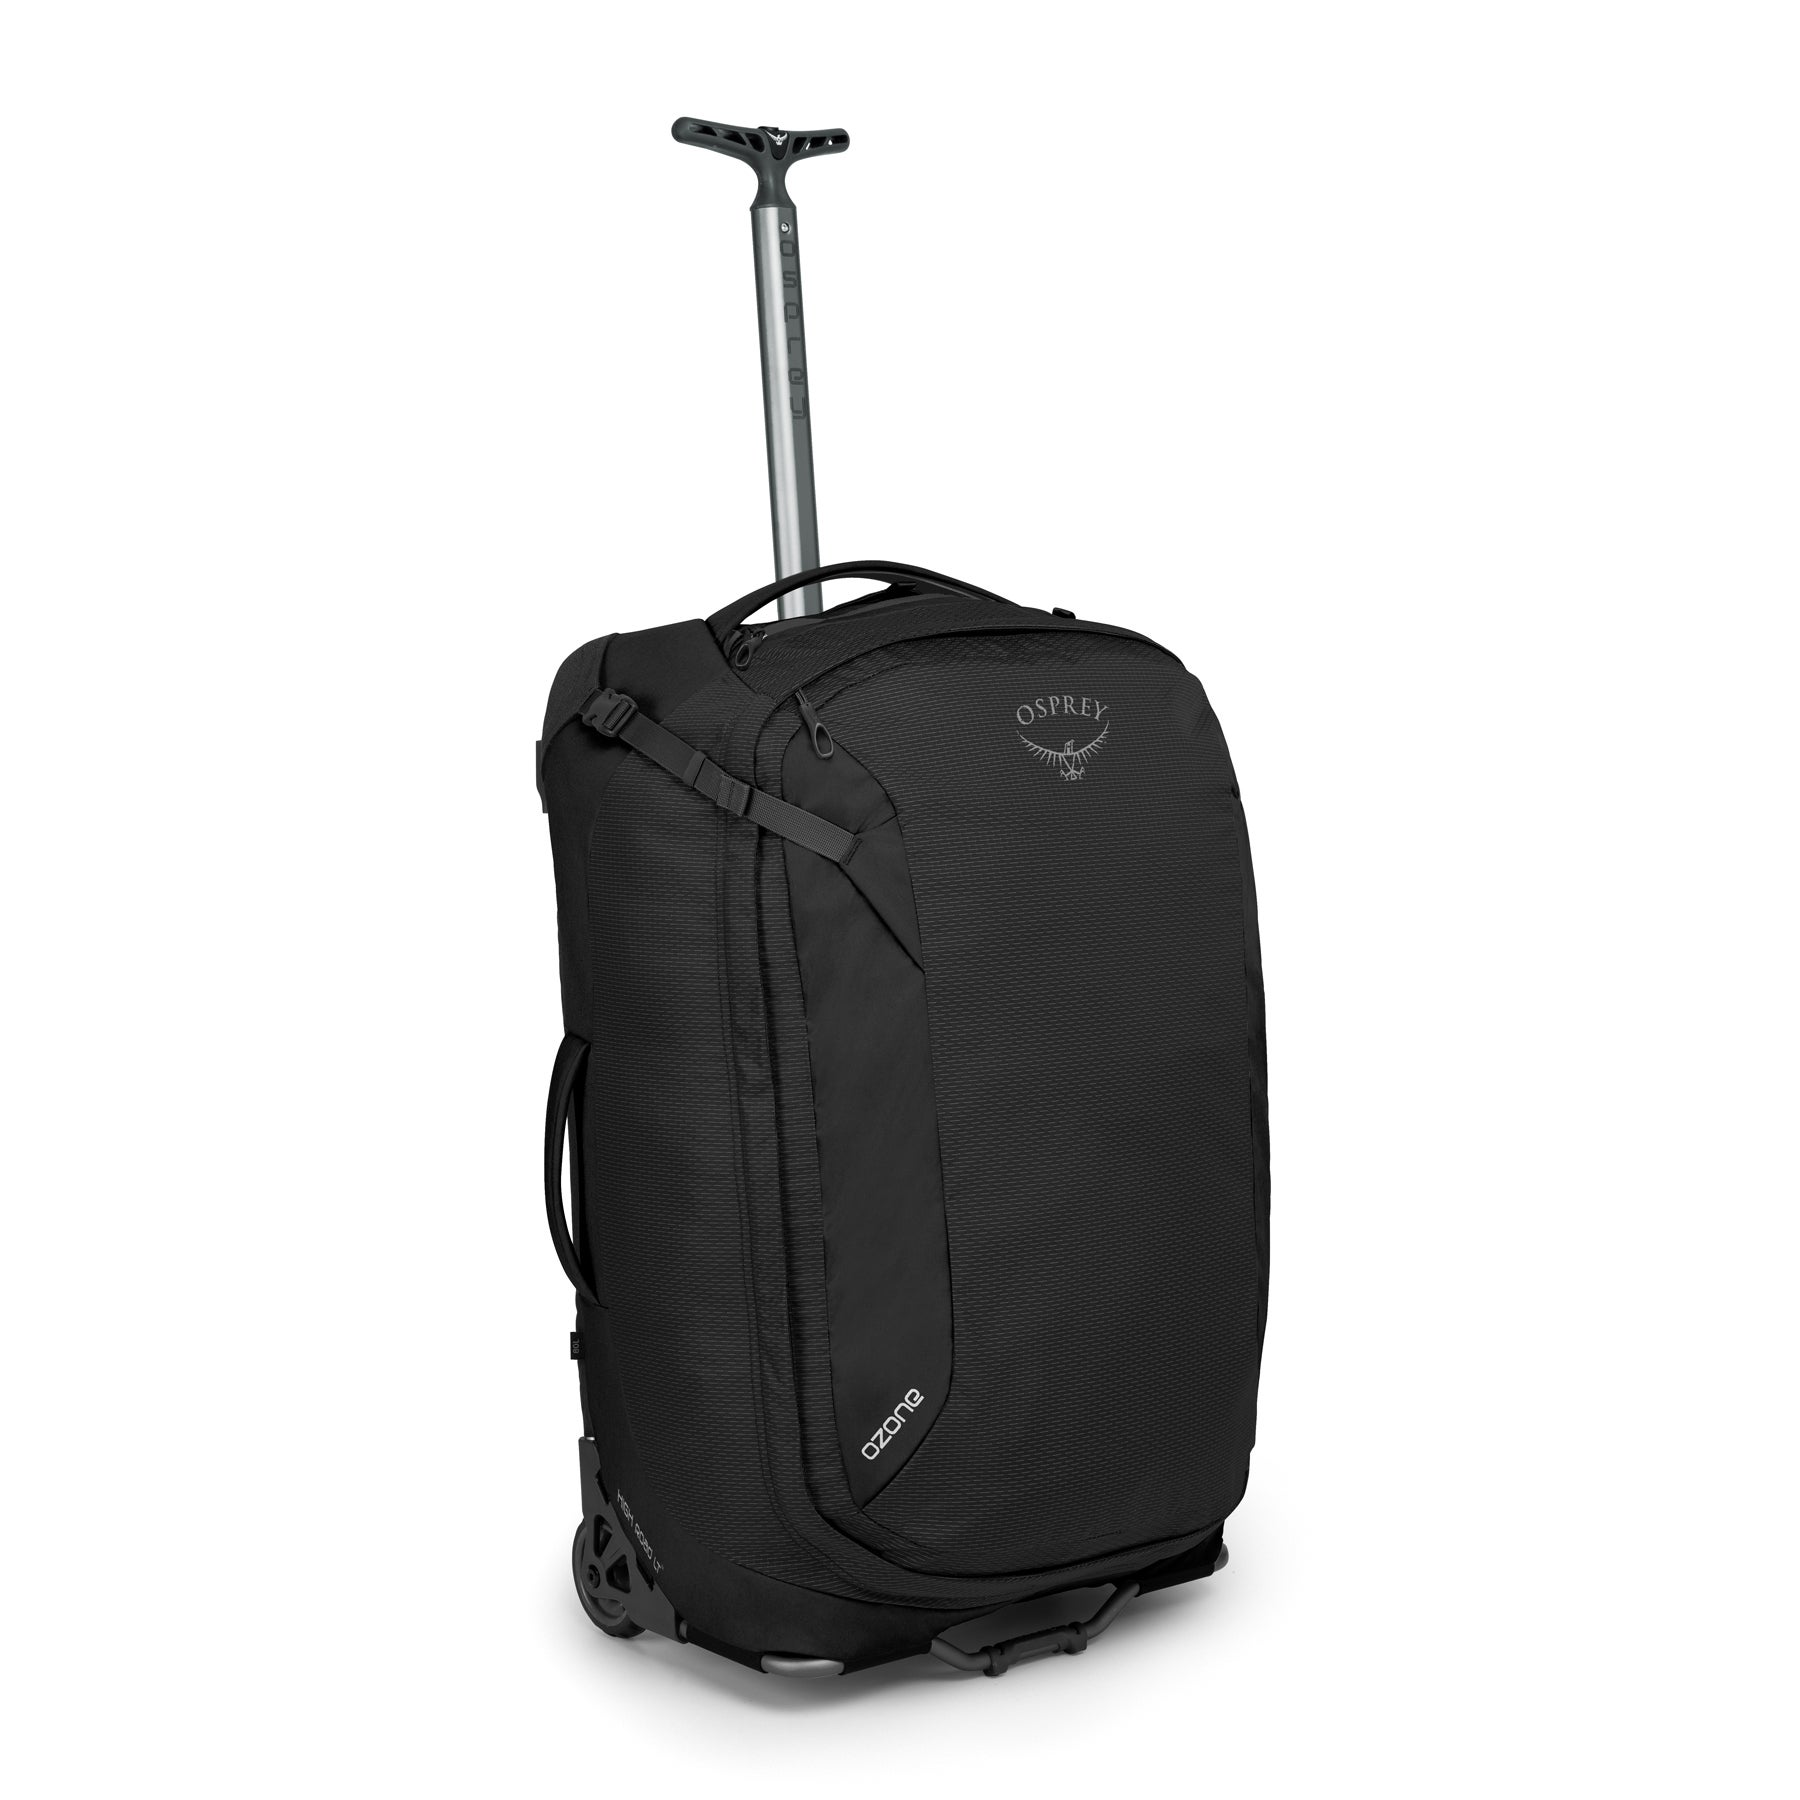 Osprey Ozone 75 Luggage